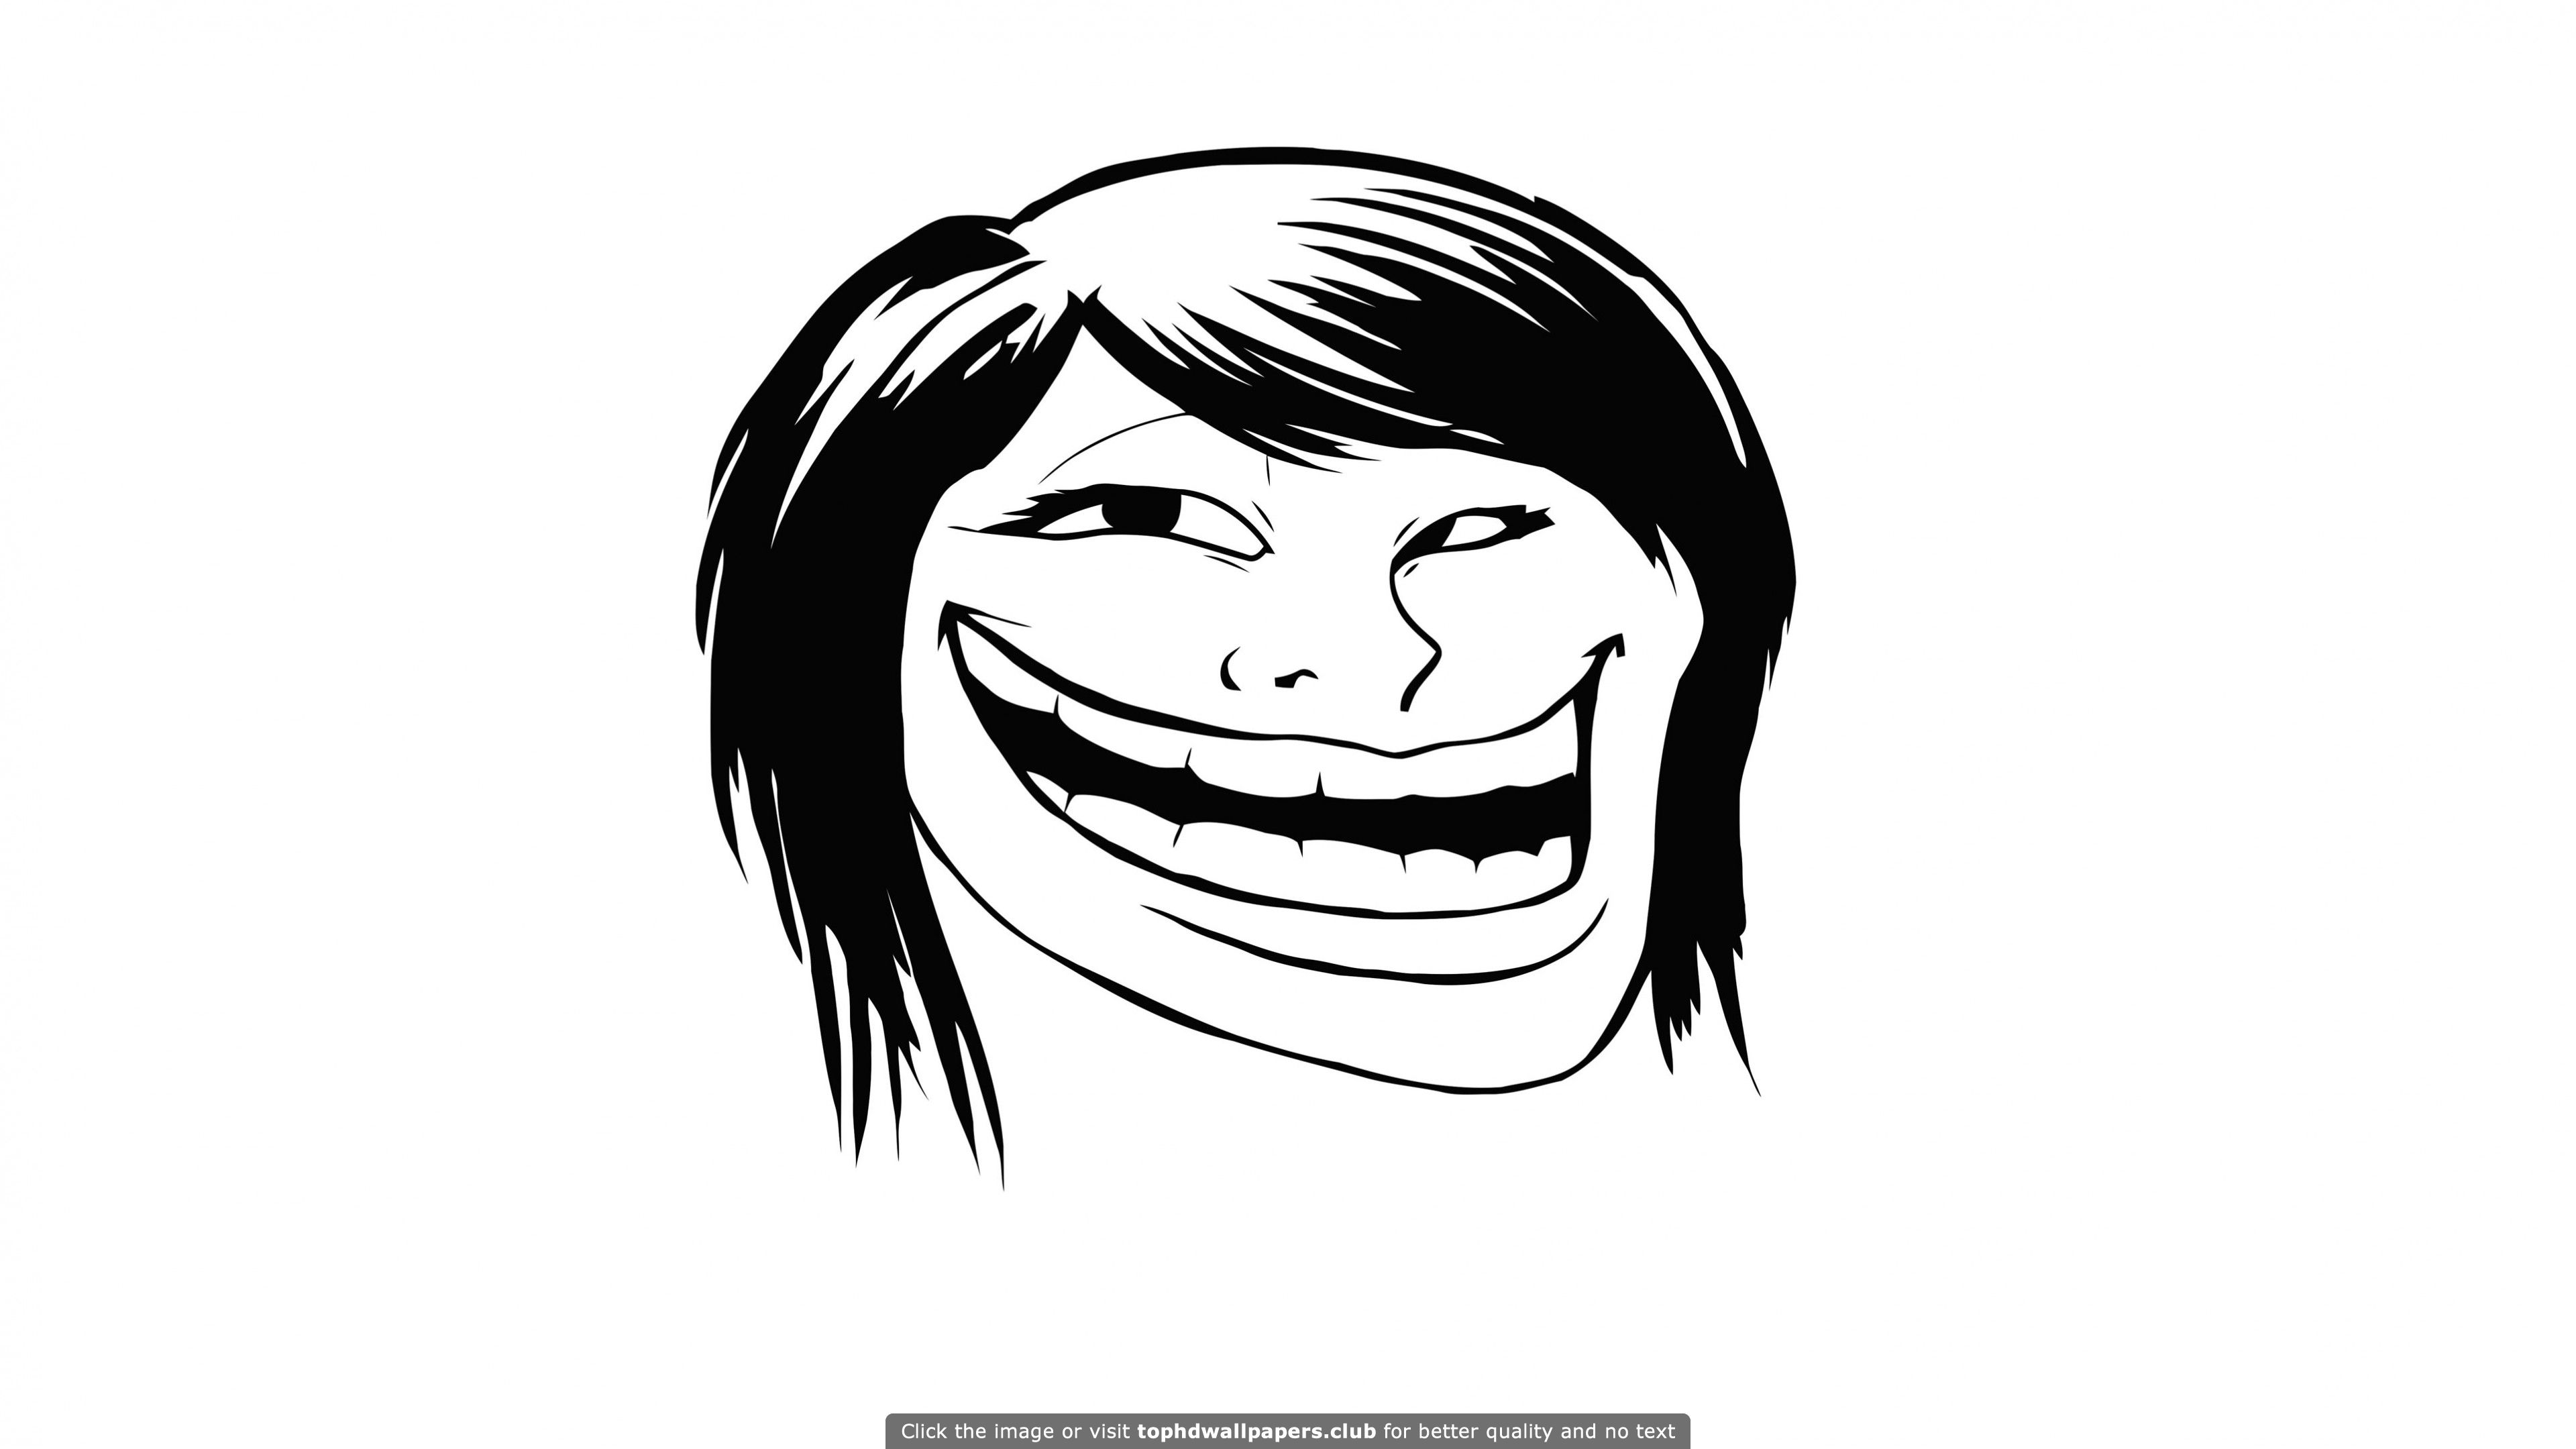 Female troll face meme hd wallpaper for your pc mac or mobile female troll face meme hd wallpaper for your pc mac or mobile device voltagebd Gallery